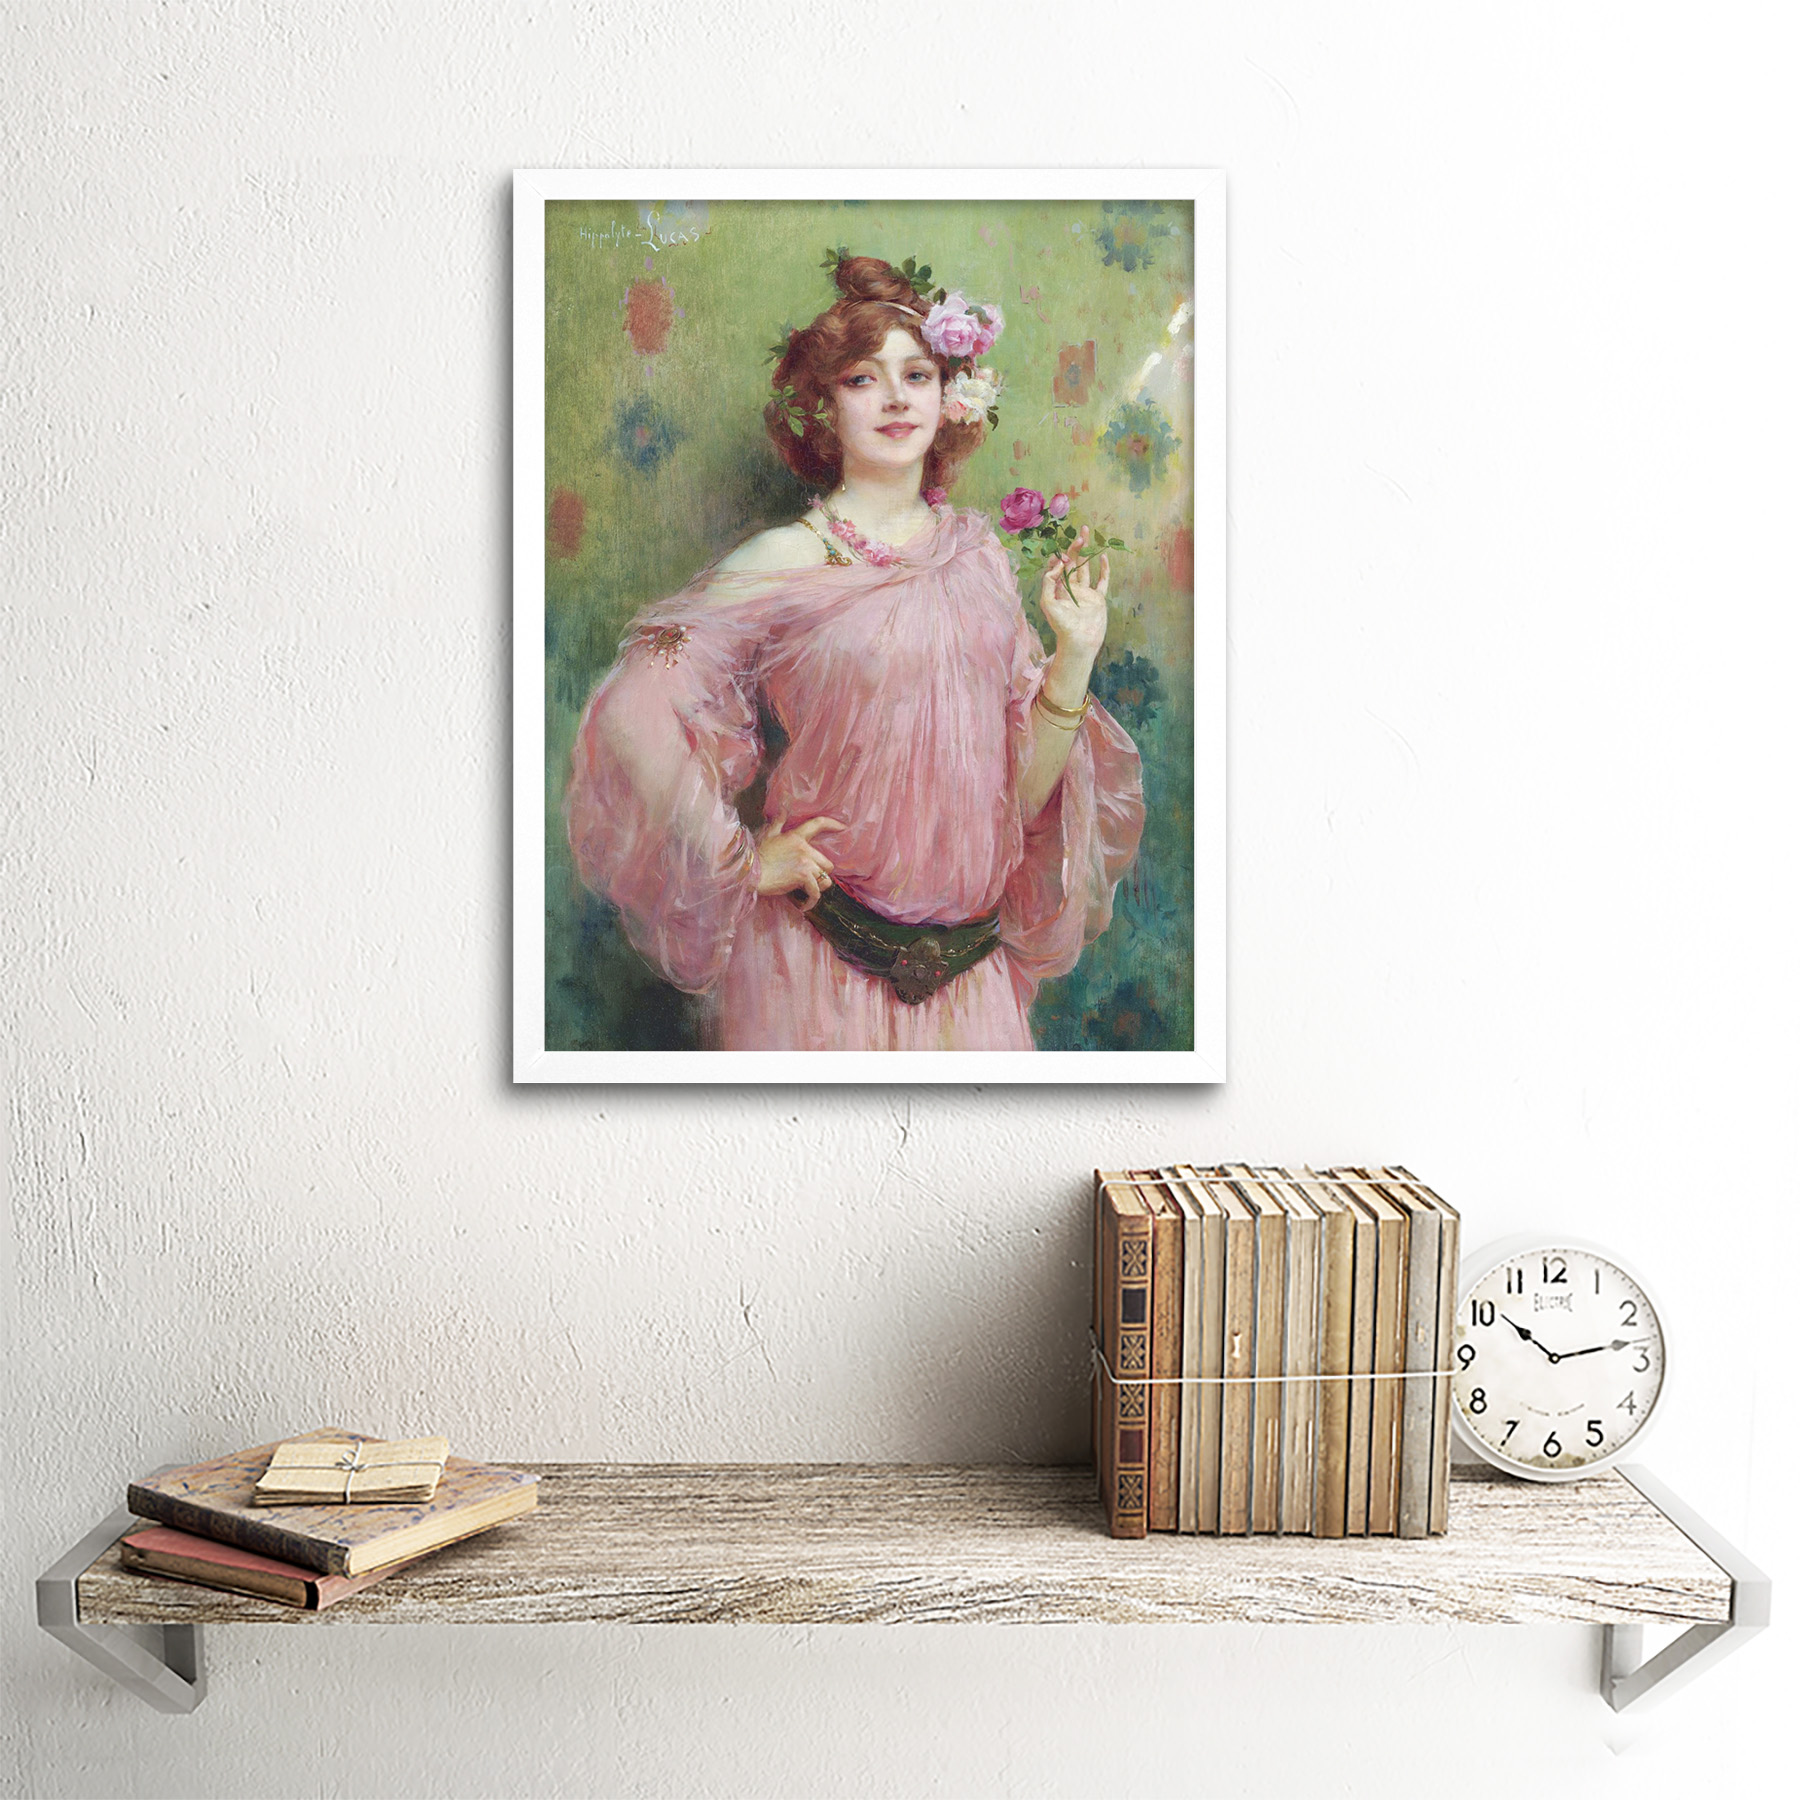 Hippolyte-Lucas-Beauty-In-Pink-Woman-Flowers-Painting-Art-Print-Framed-12x16 thumbnail 18